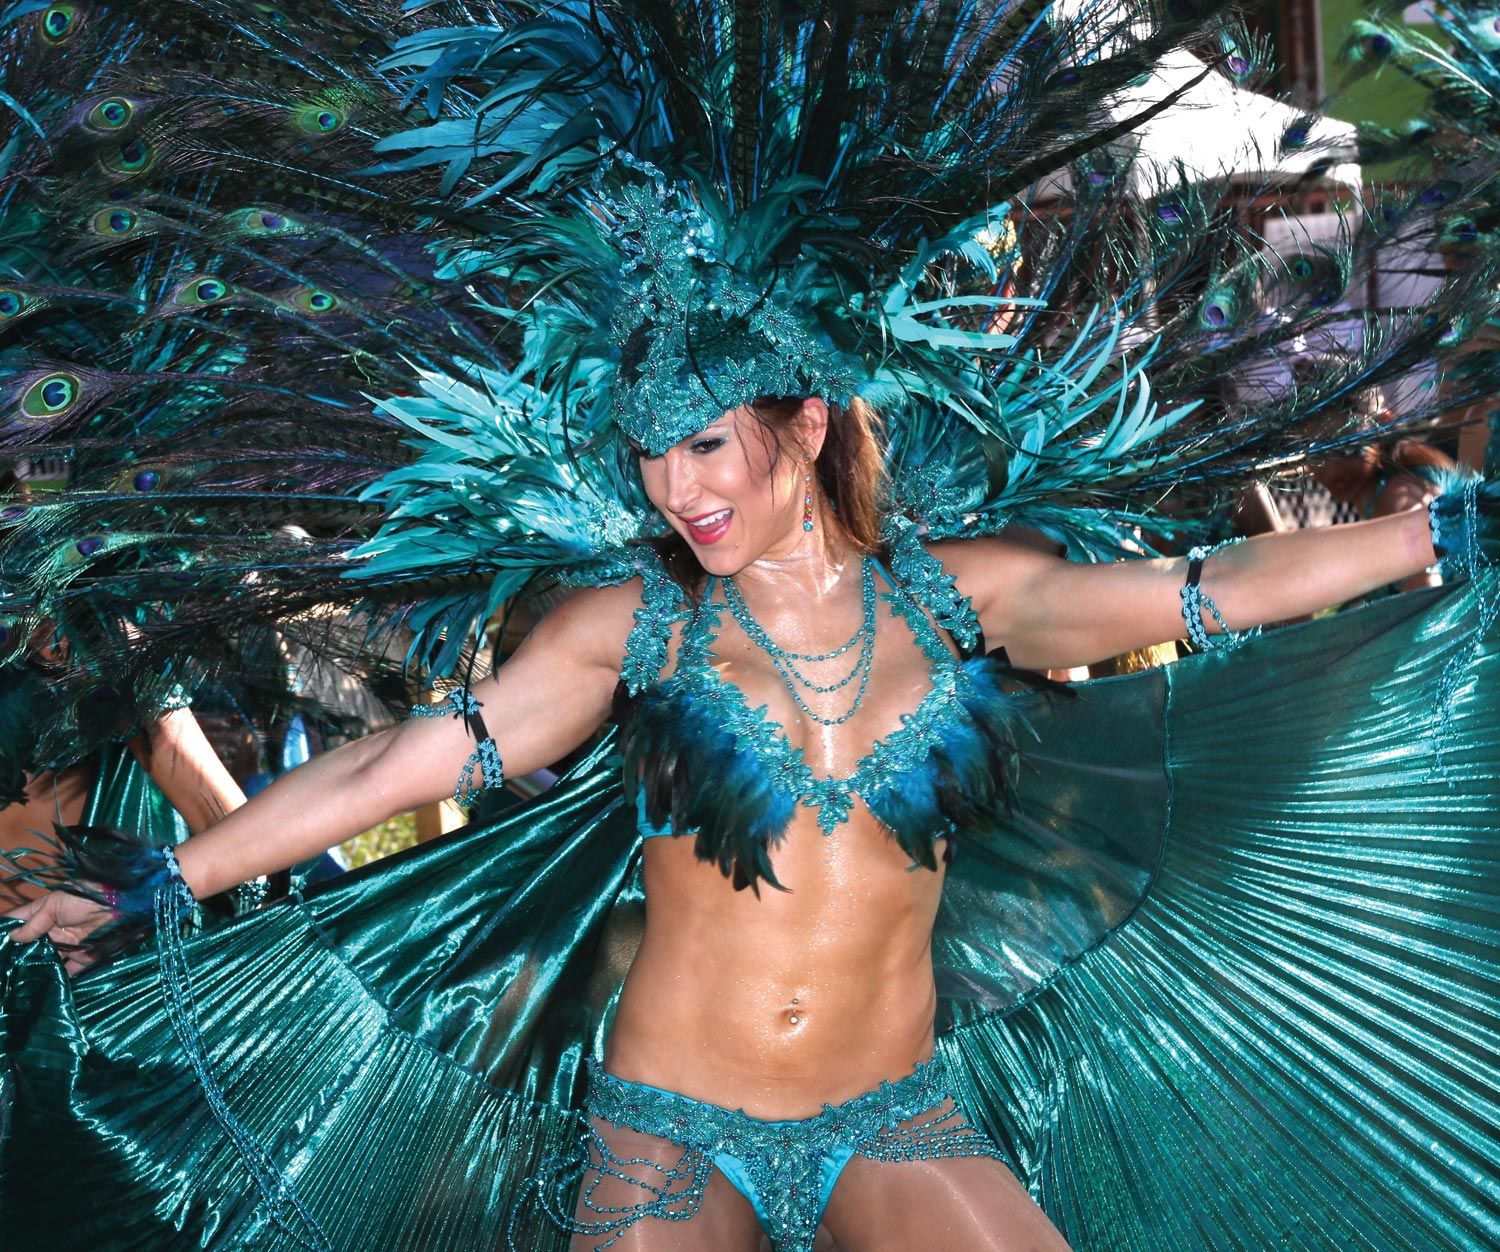 A masquerader 'making a joyful sound and jumping up in the air'. Photograph by Andre Alexander